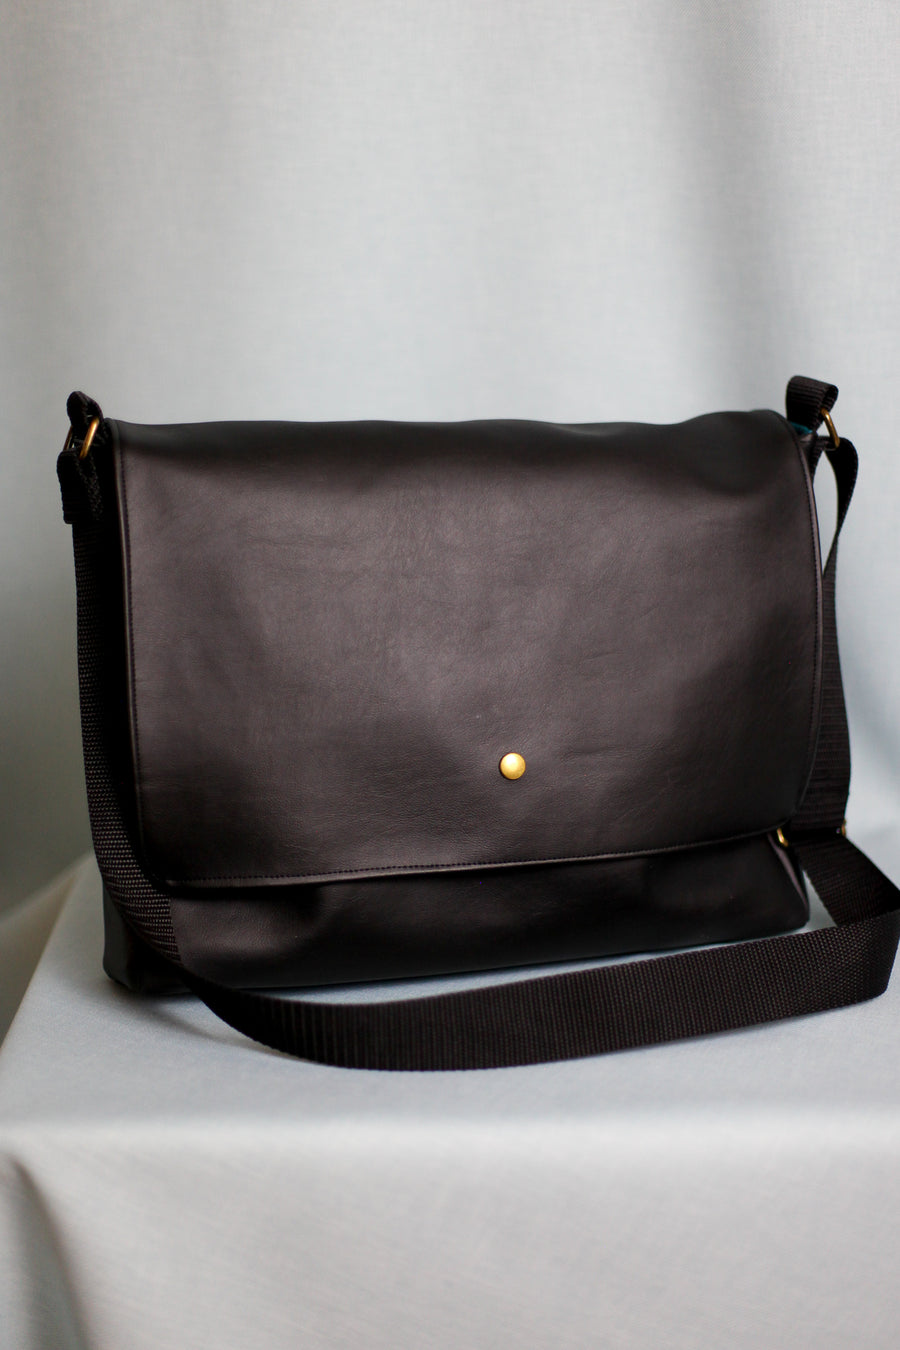 Padded Laptop Messenger Bag - Black Faux Leather